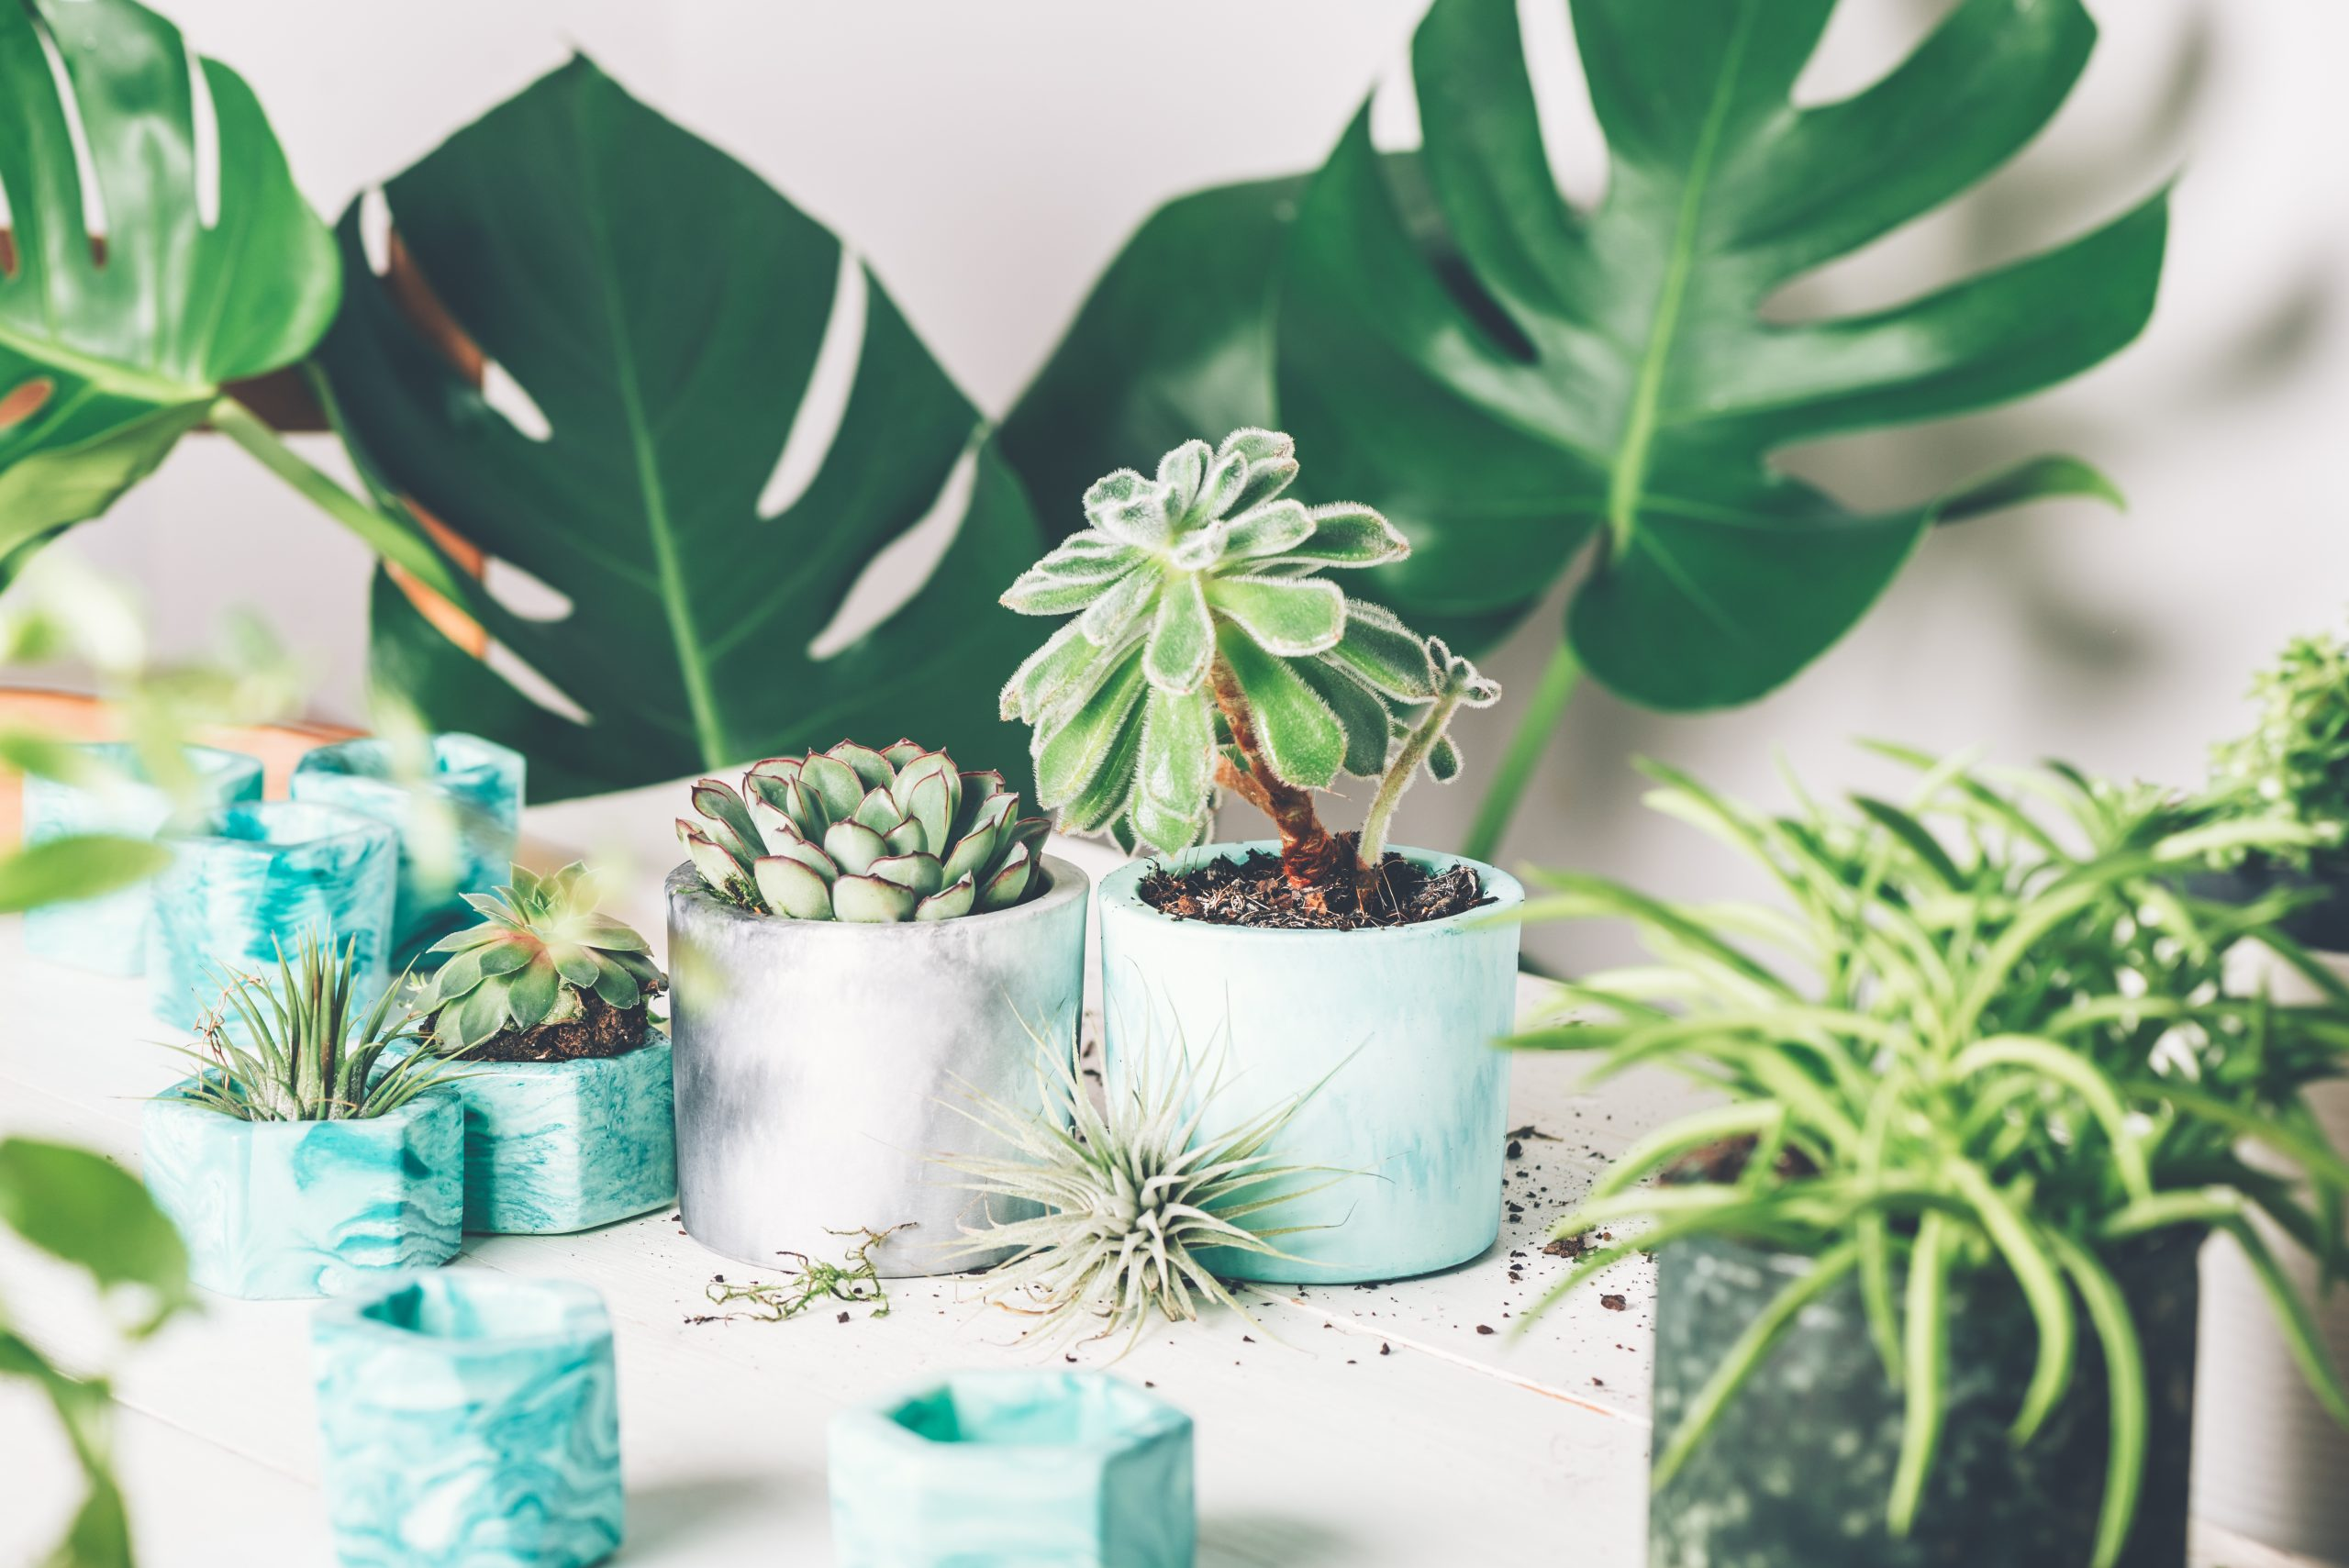 Meet the Instagram Influencer Who Raps to Her Plants Image